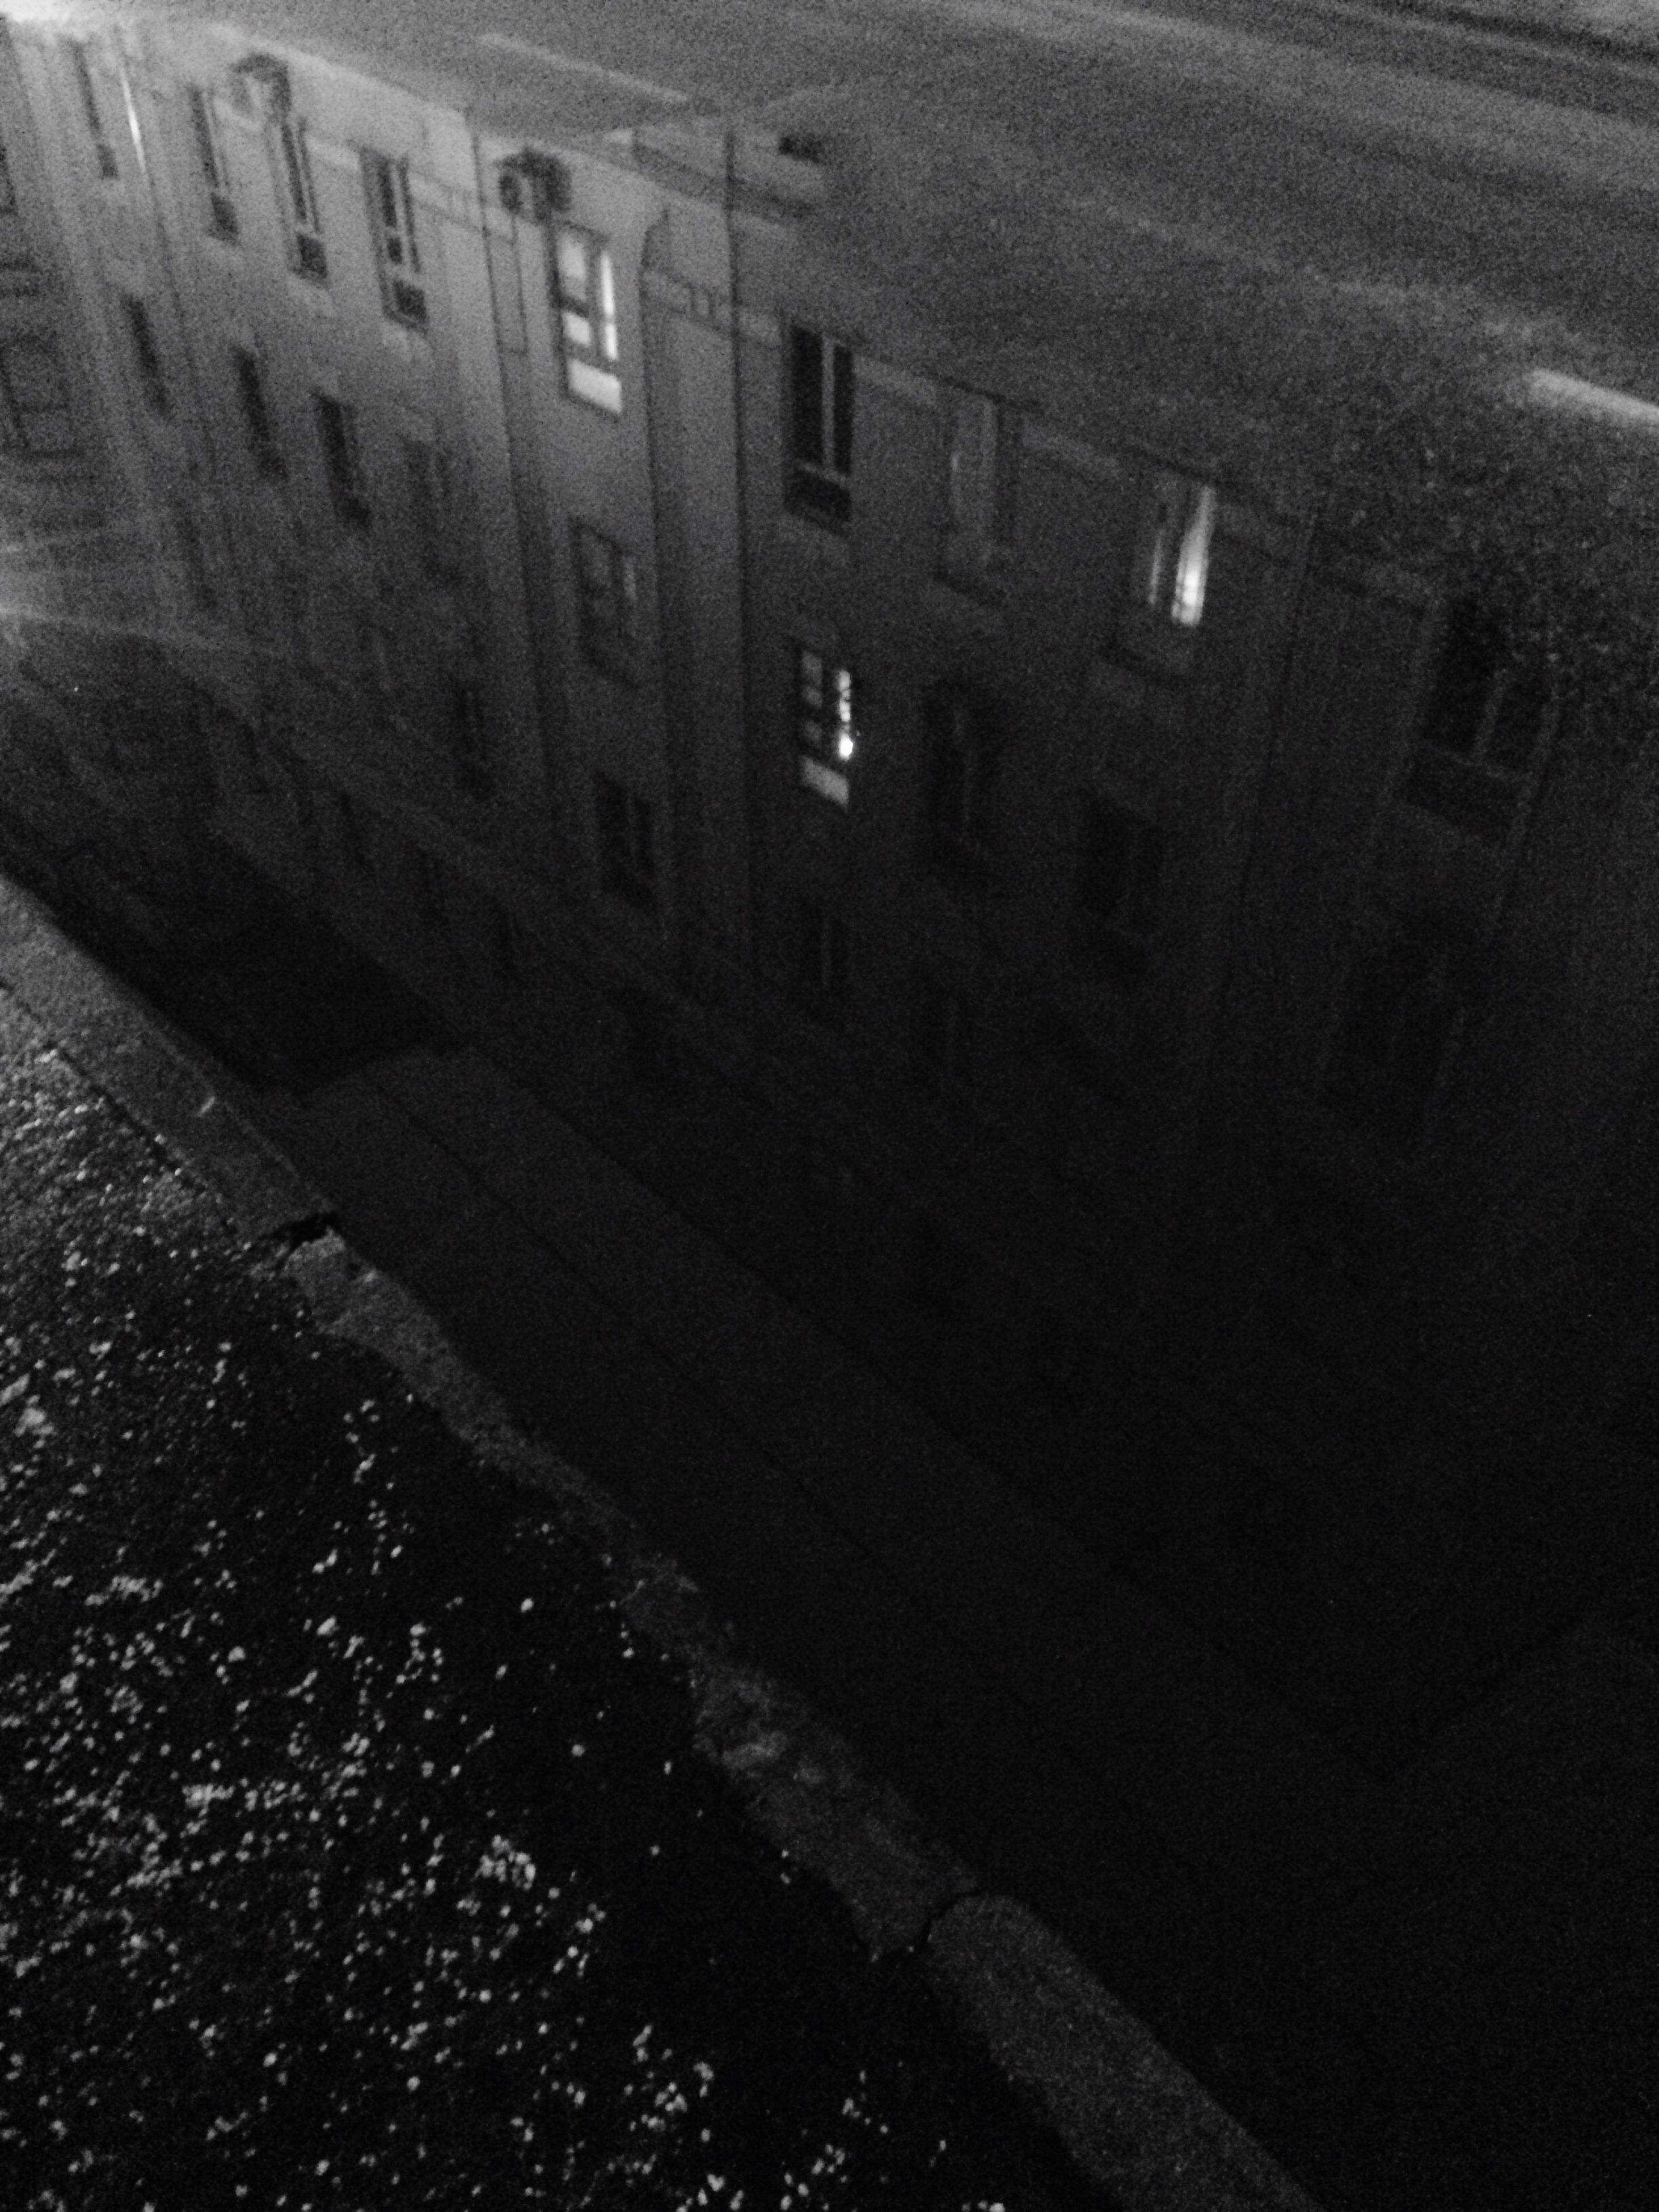 architecture, built structure, building exterior, street, transportation, building, road, high angle view, city, window, night, no people, outdoors, wet, residential building, puddle, residential structure, the way forward, illuminated